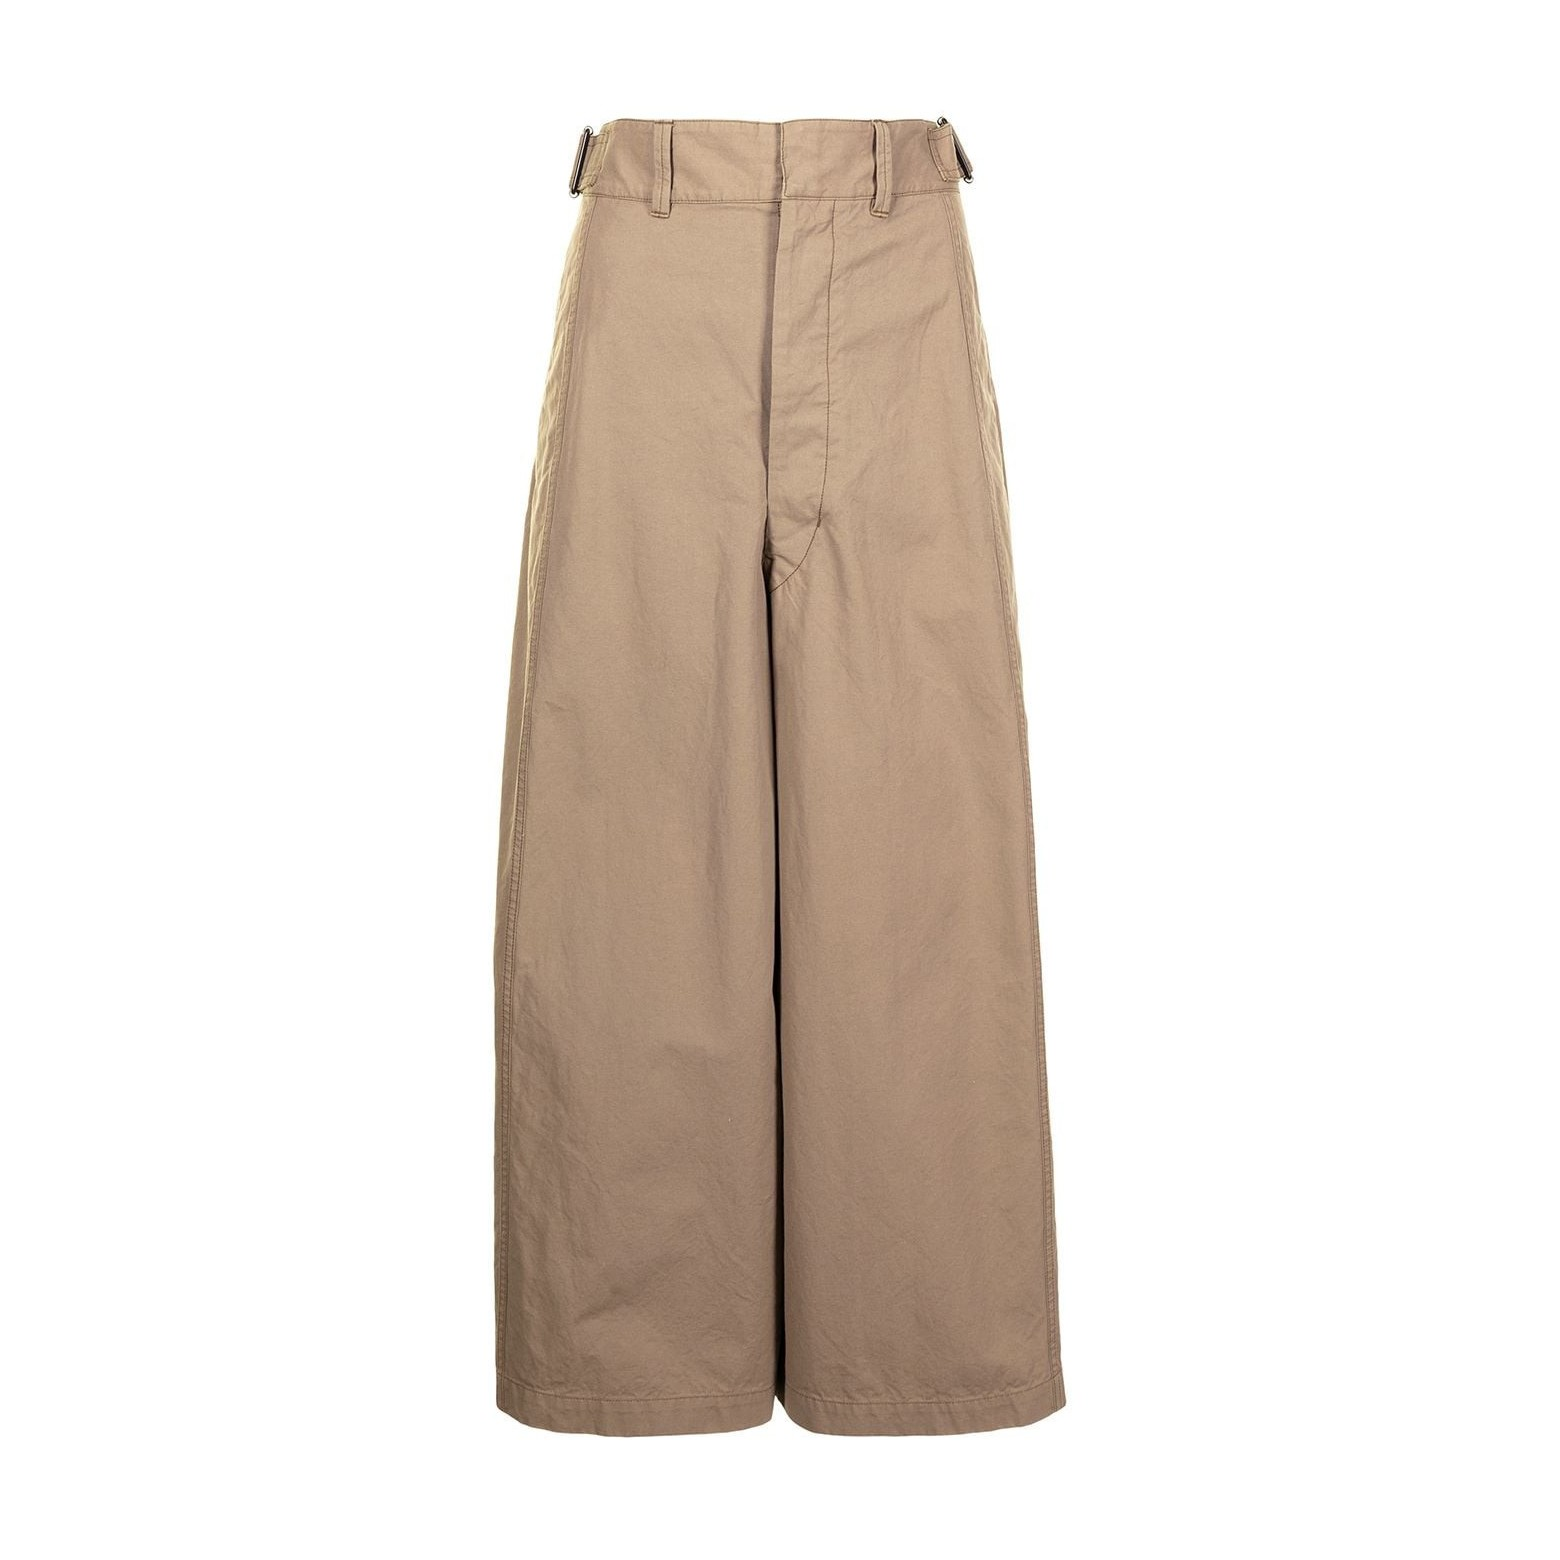 Lemaire Cropped Large Pants Dark Beige